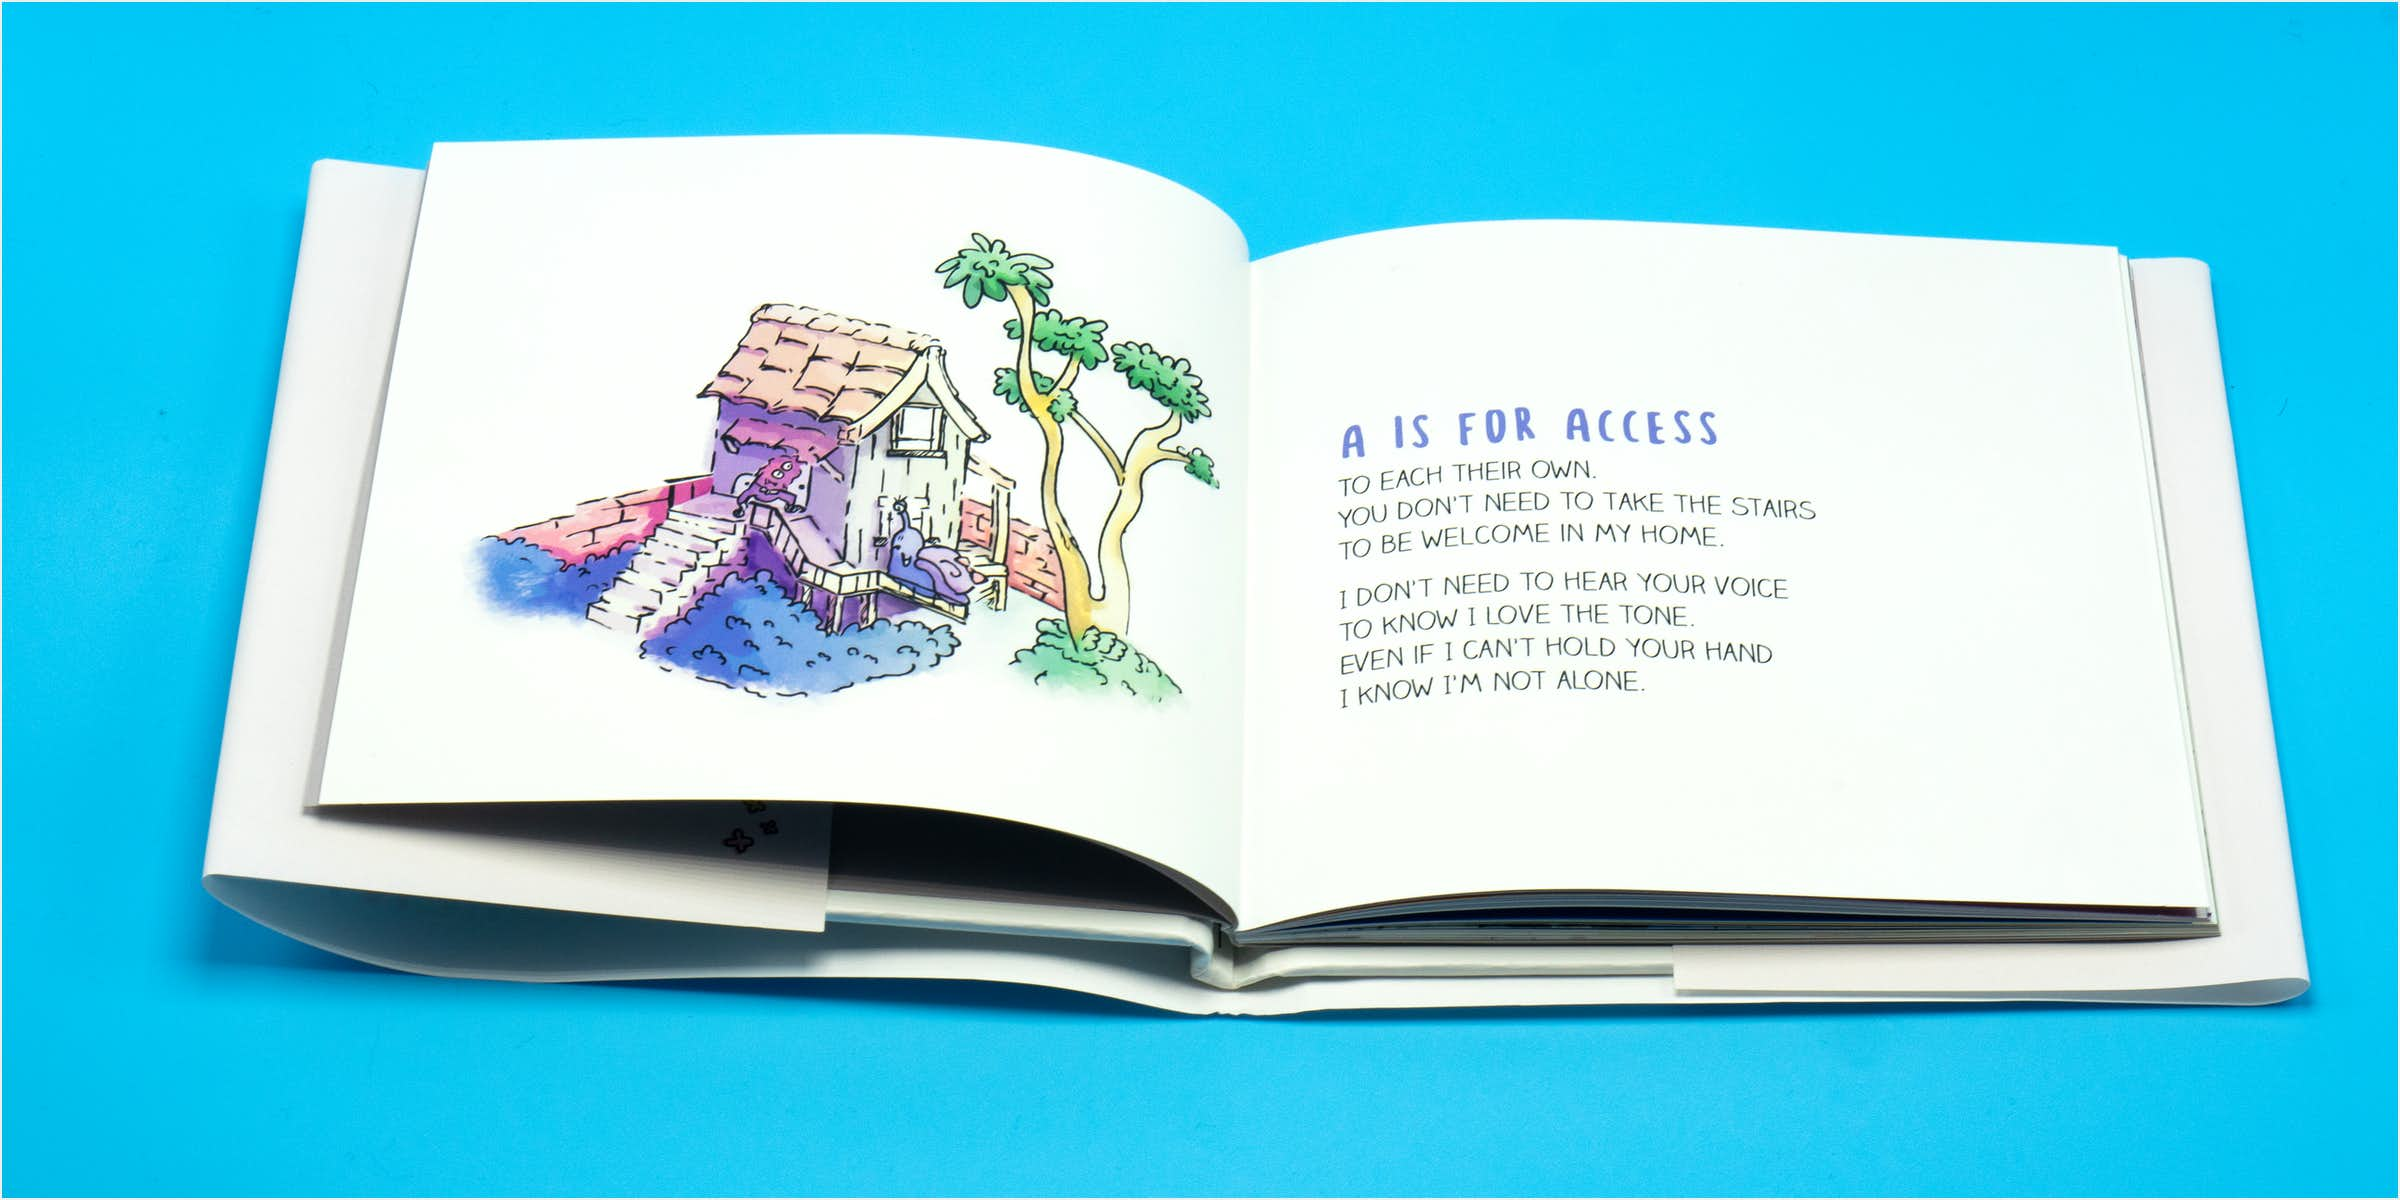 A is for Access